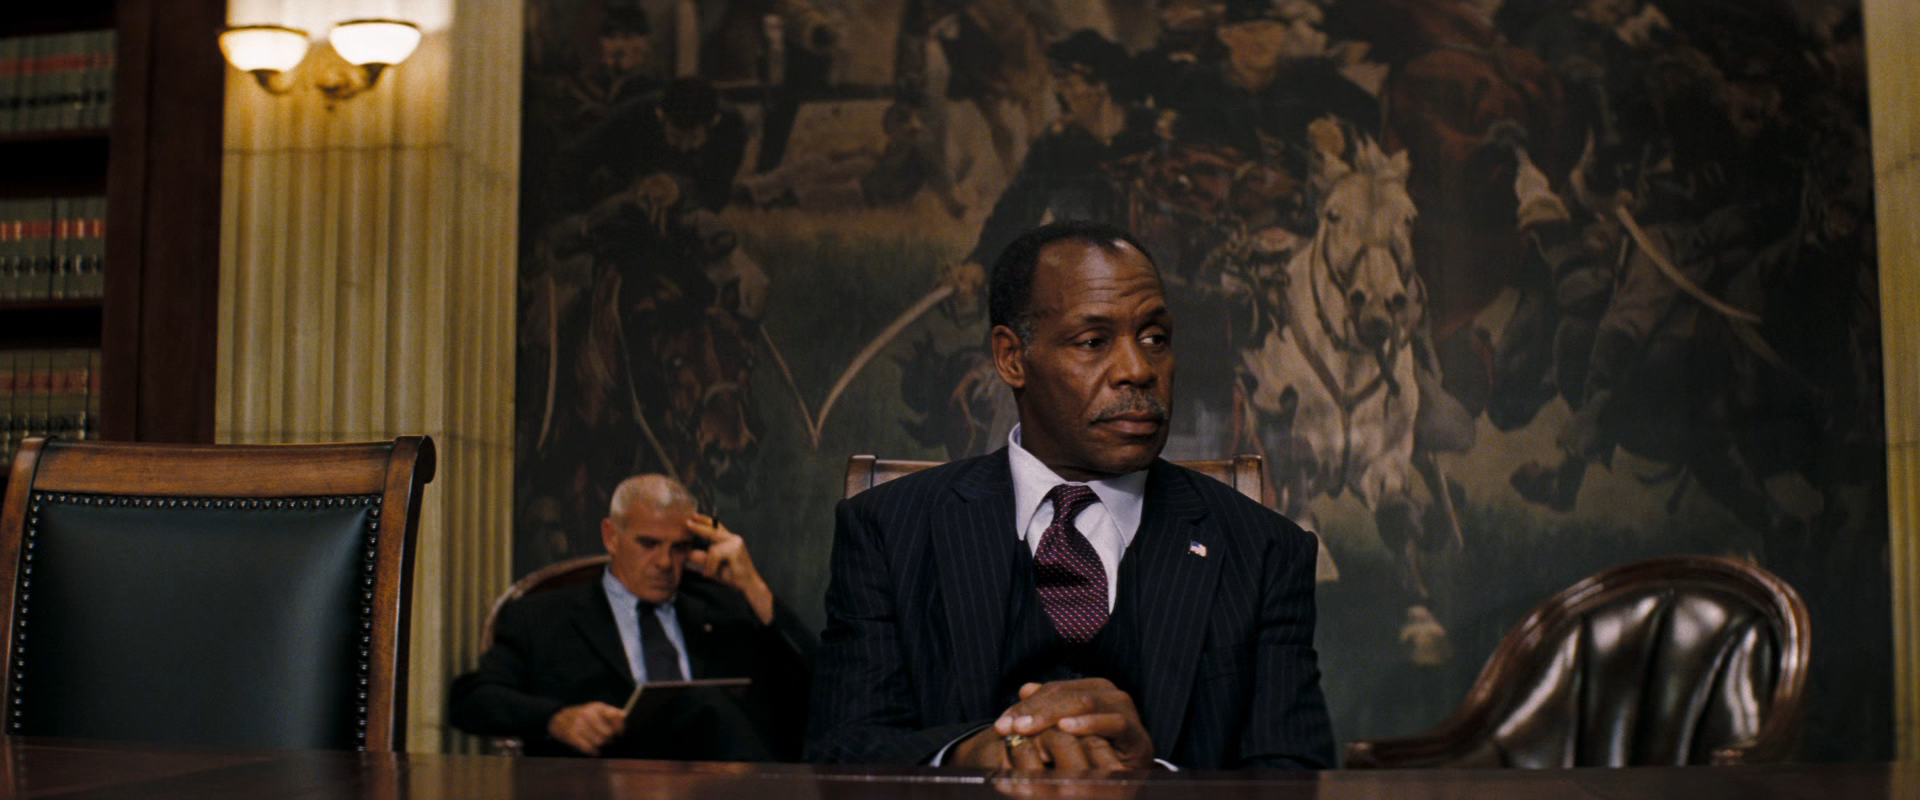 Danny glover movie chinese